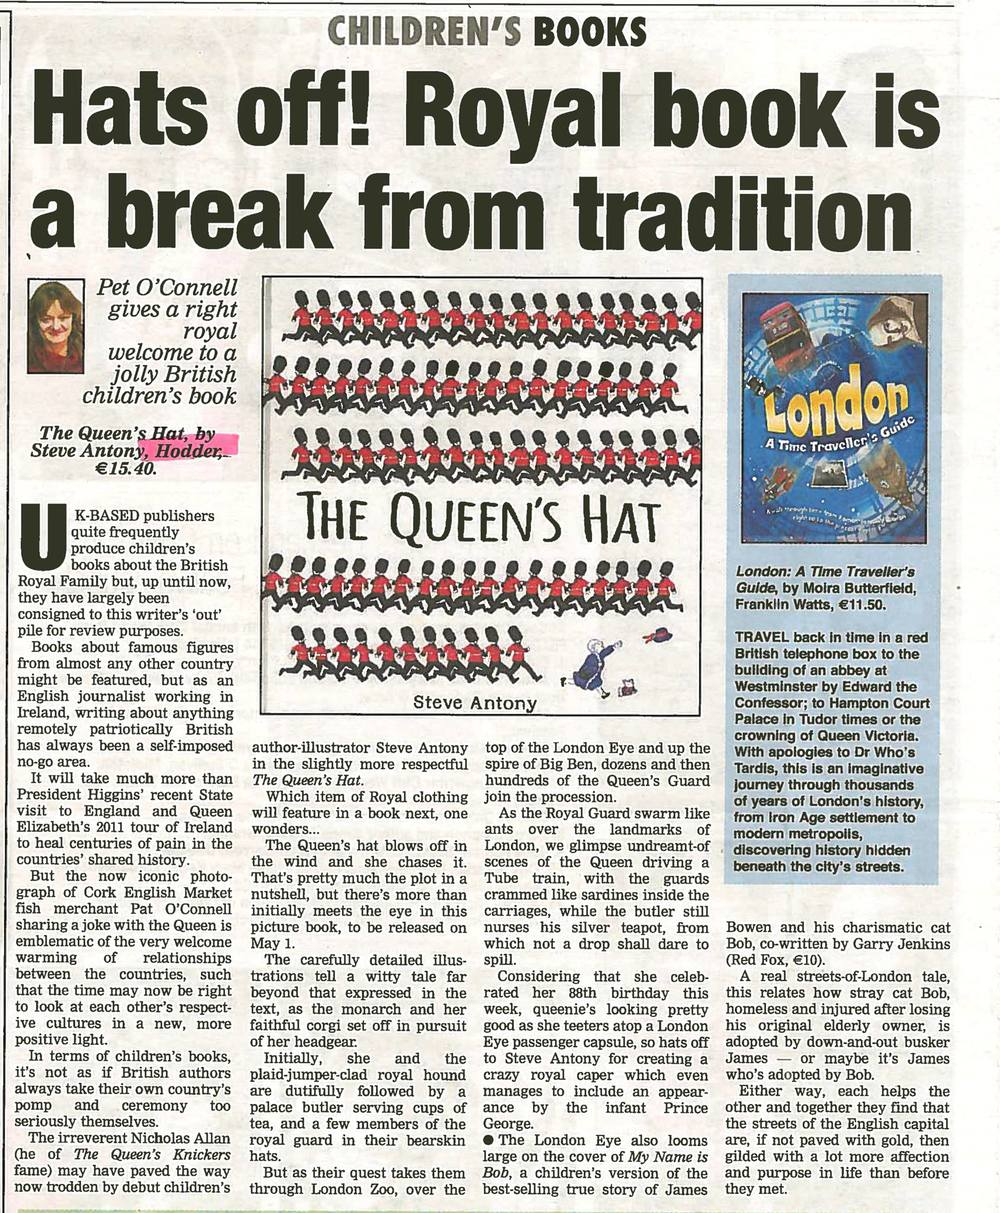 A full page review in Ireland's Echo